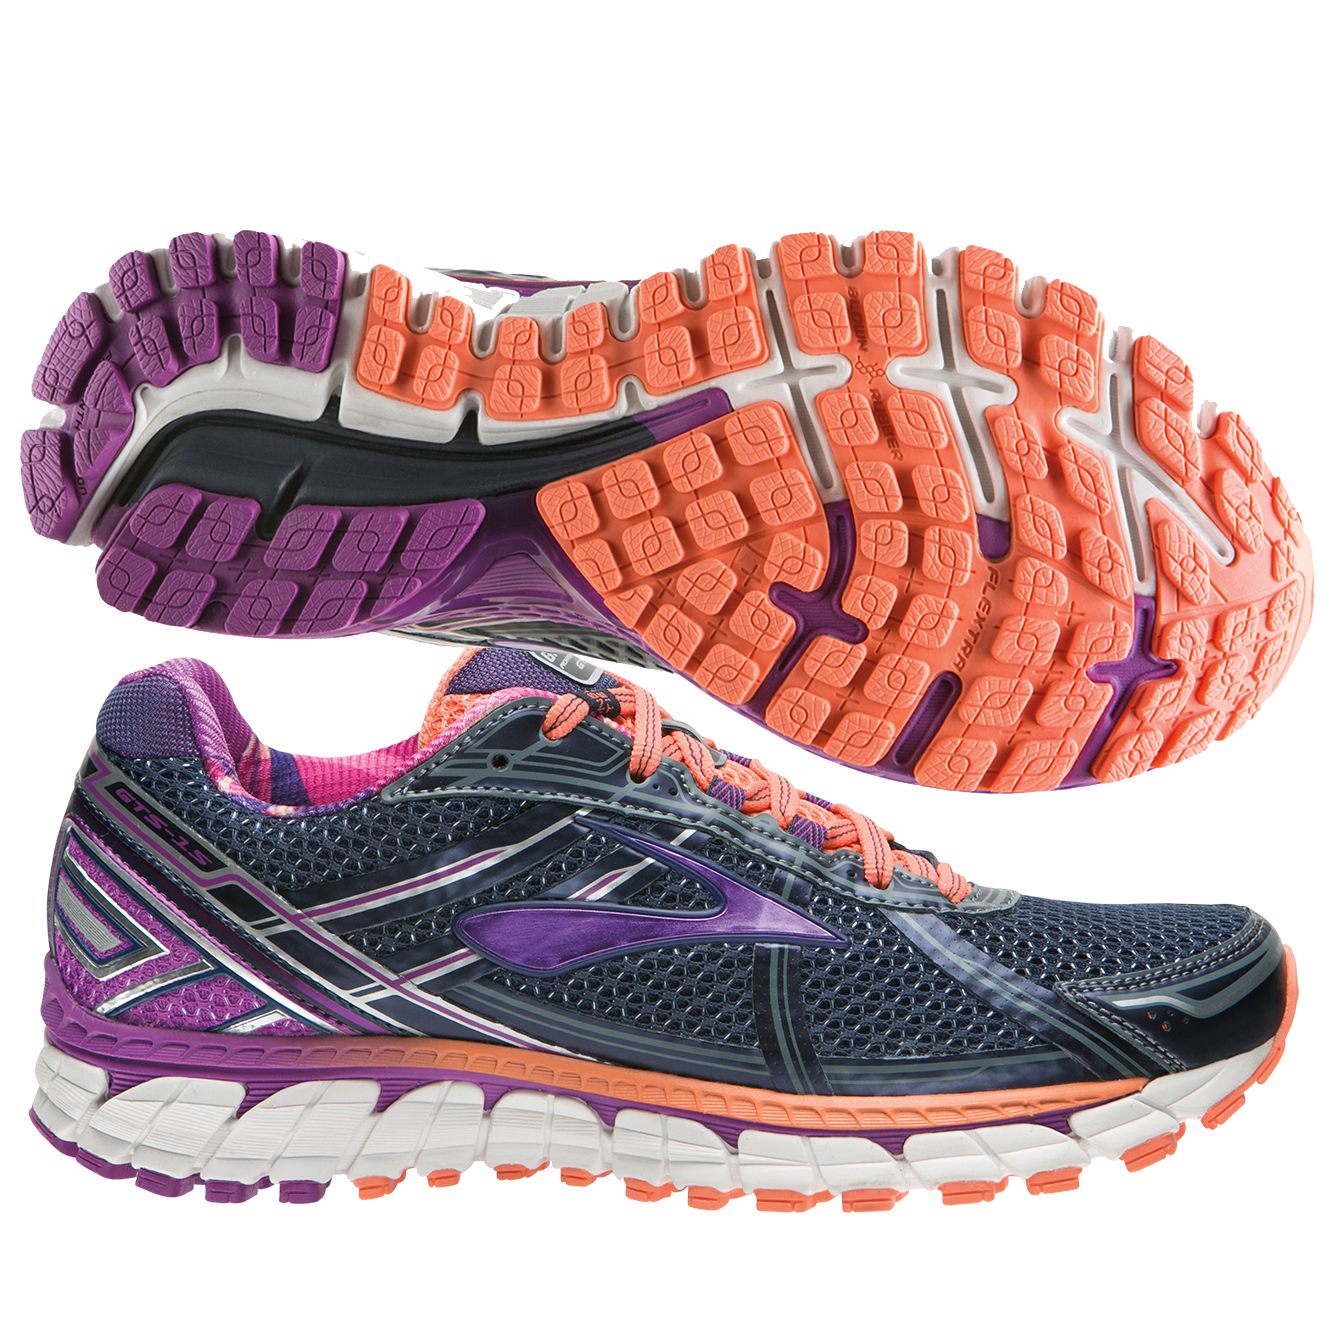 Acquista scarpe running pronatore brooks - OFF44% sconti 82520895e8b